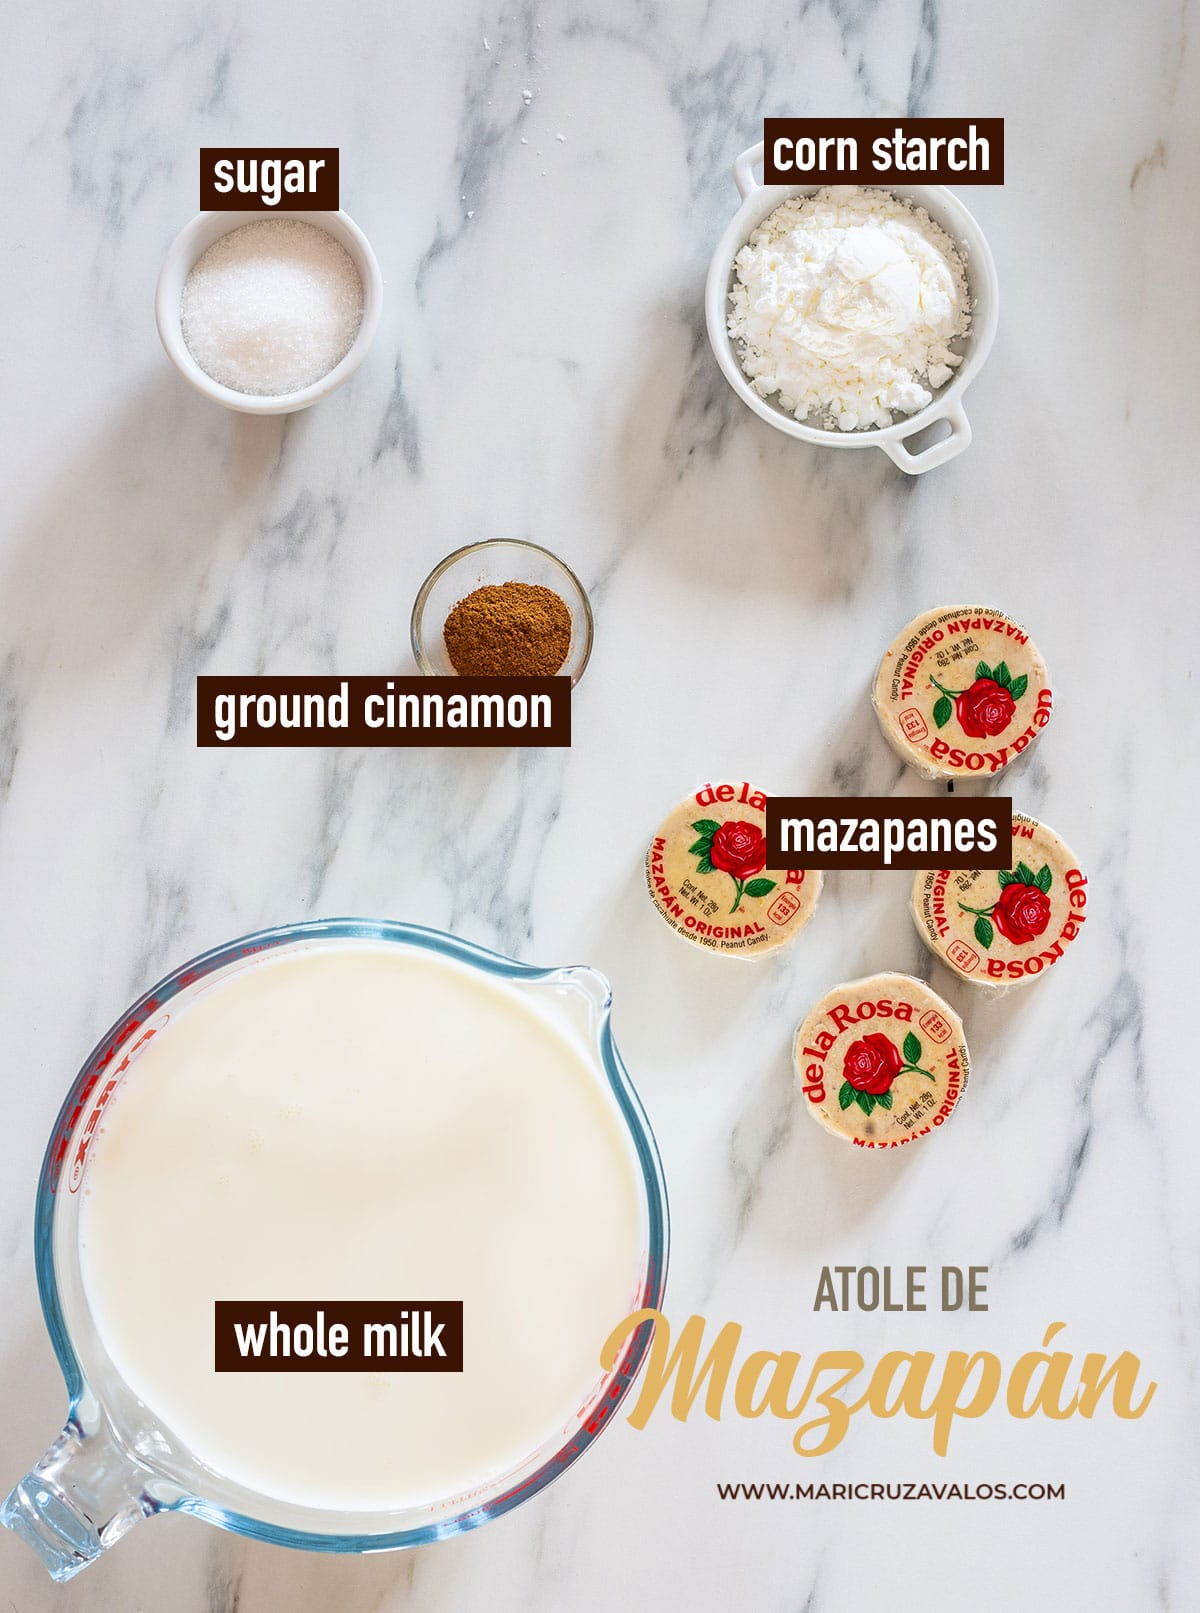 Ingredients for atole de mazapán labeled and displayed on a marble surface.